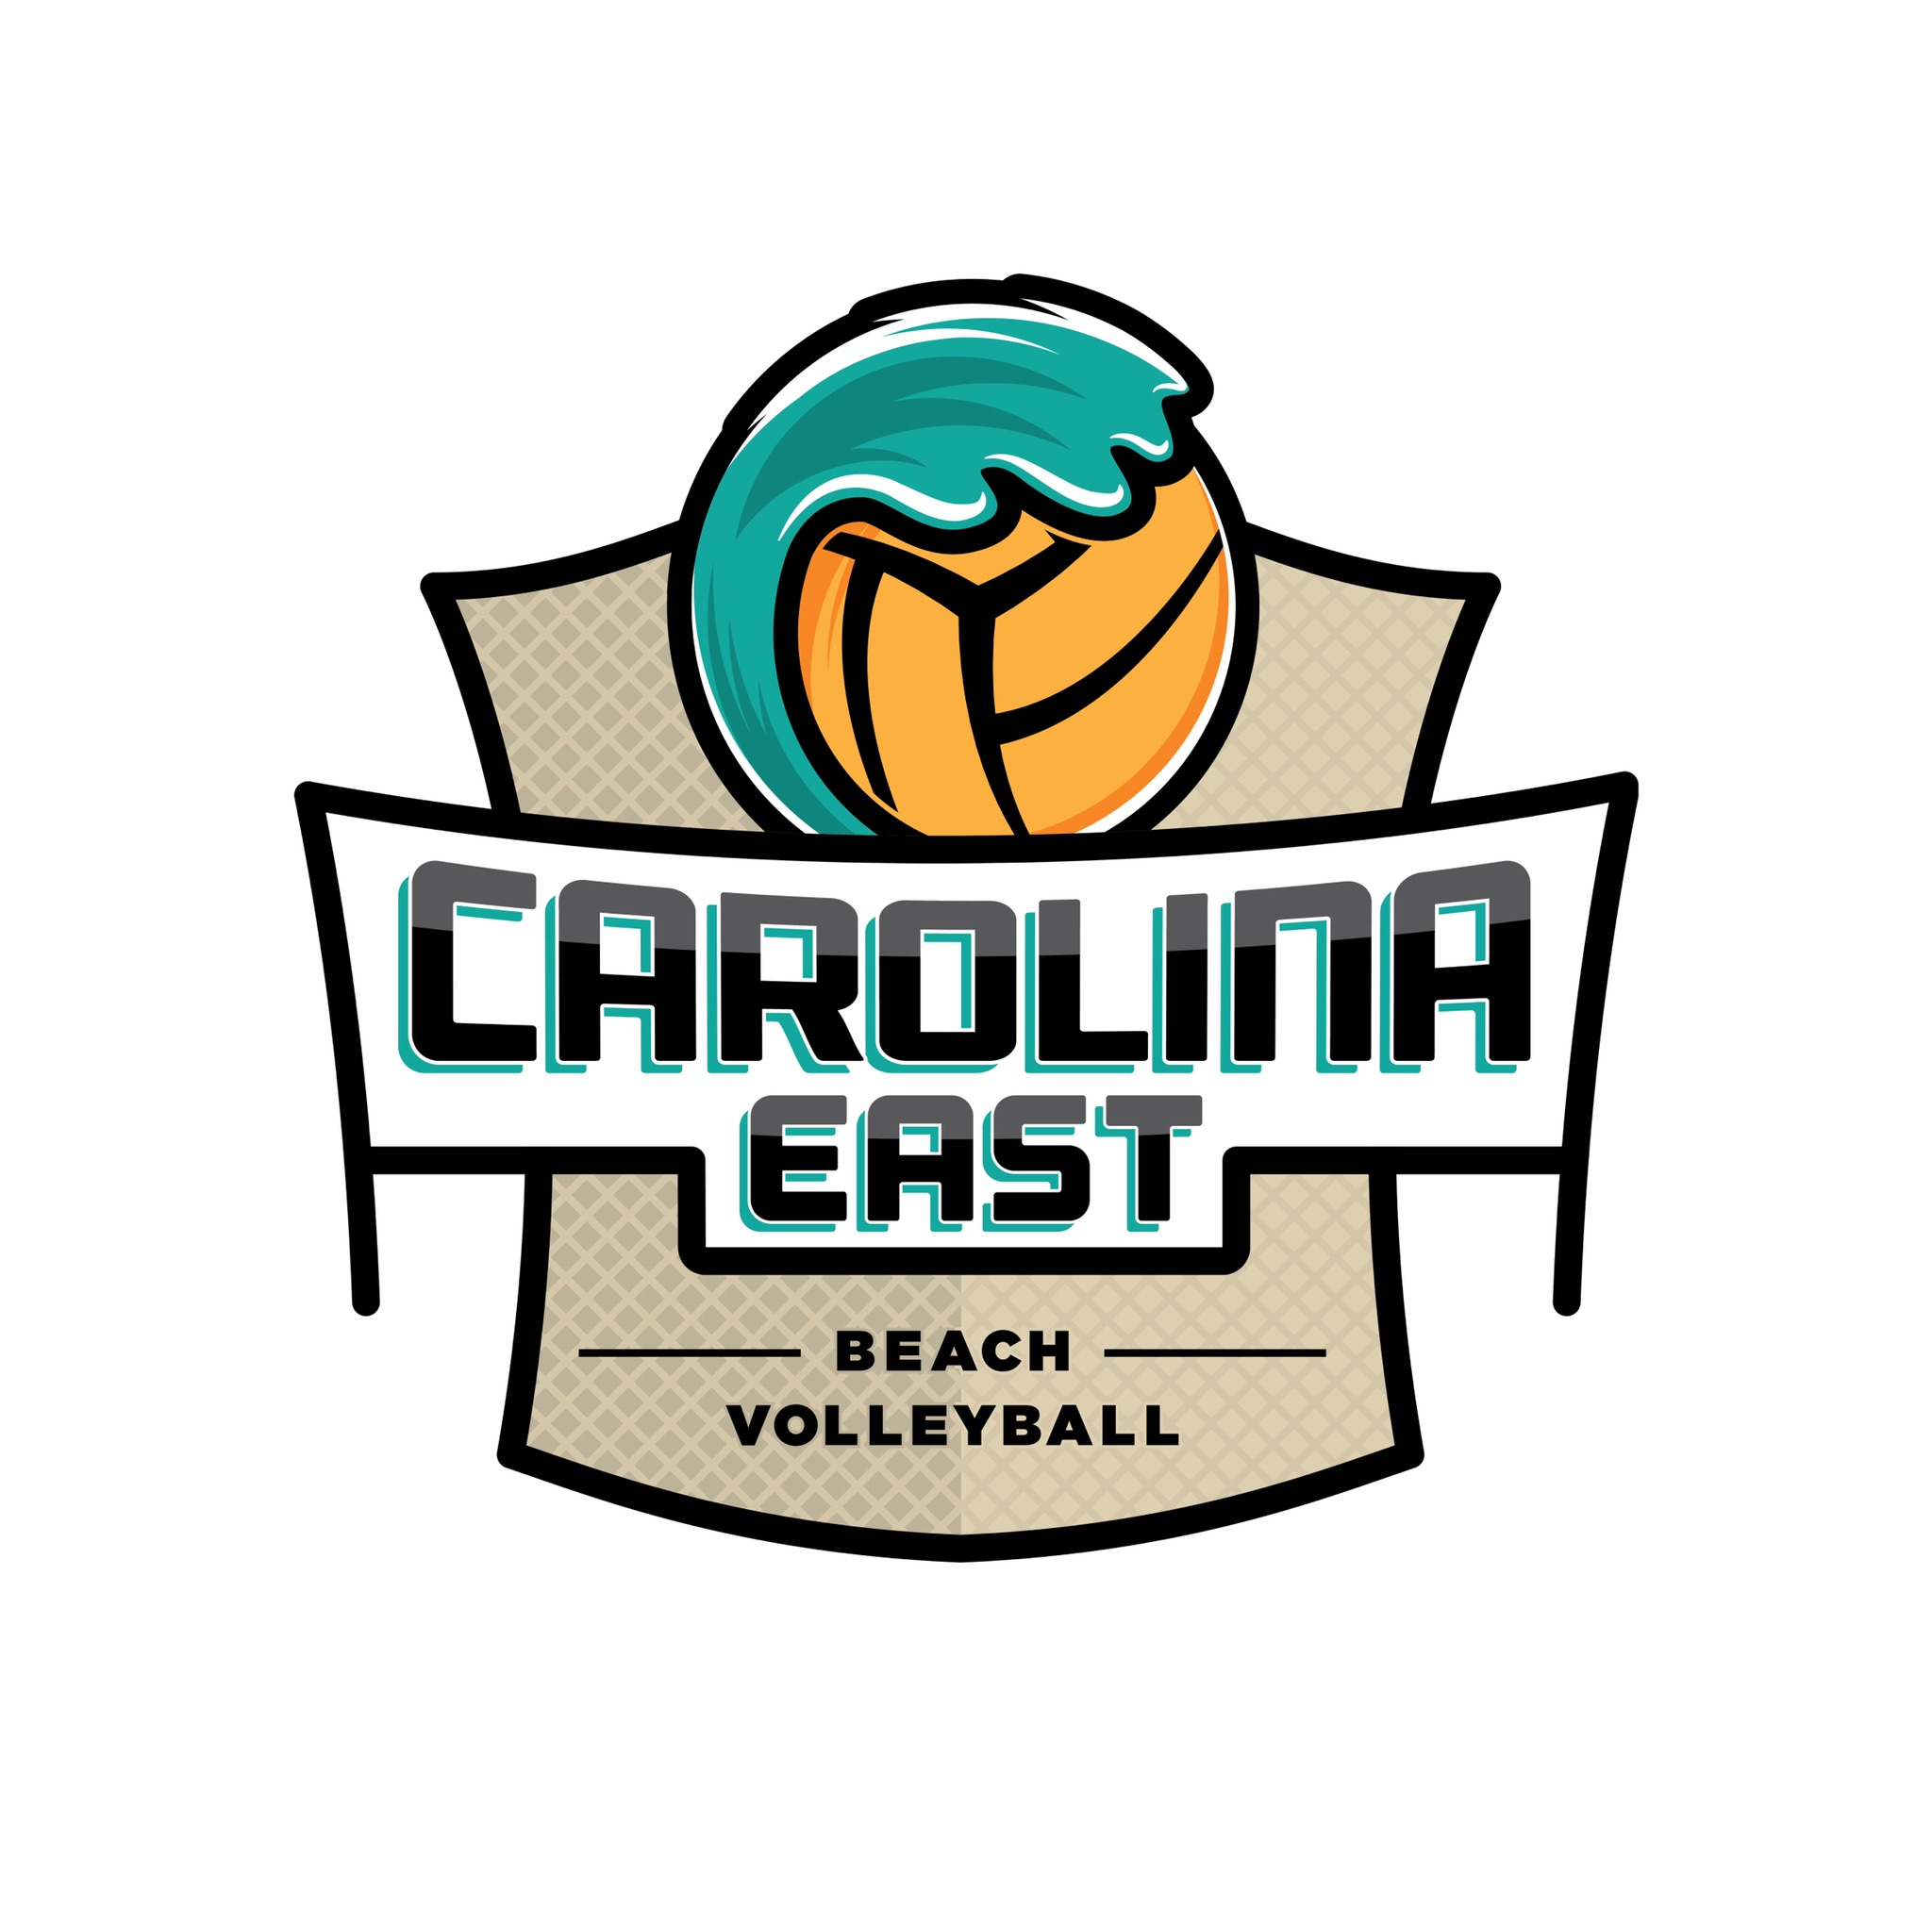 Carolina East Beach Volleyball Club